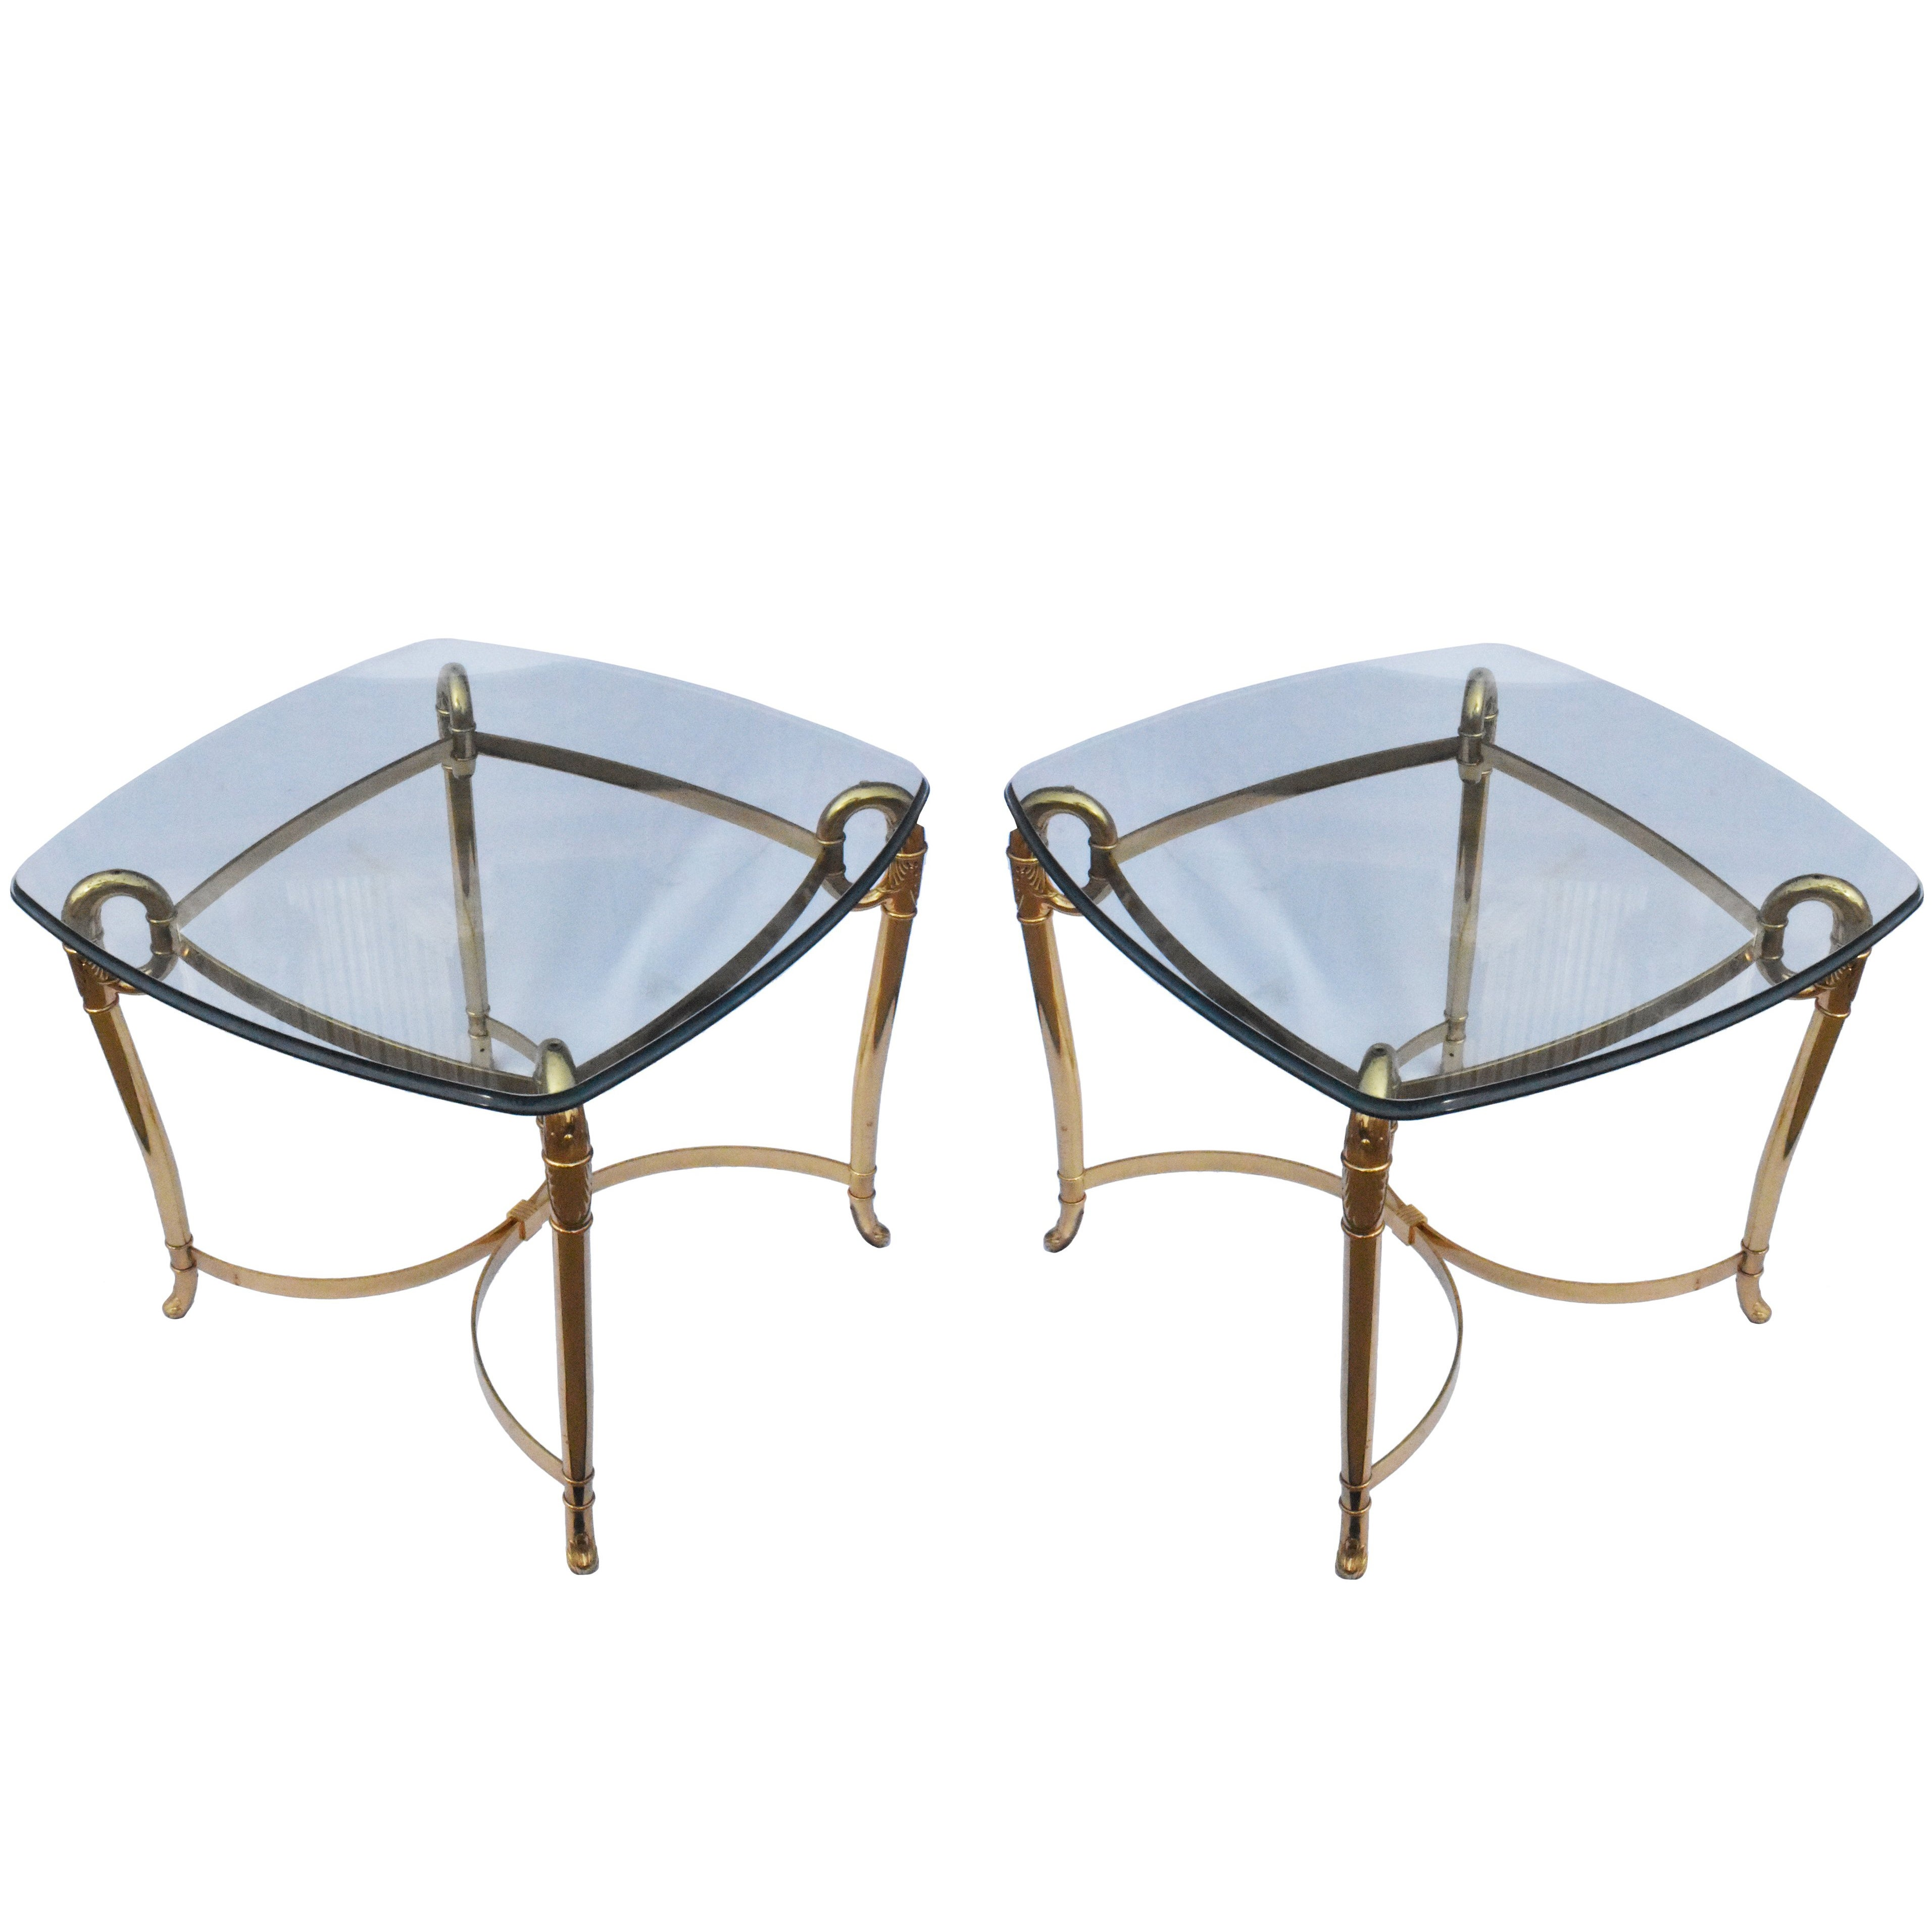 Italian, 1980s Pair of Bronze Side Tables with Glass Tops